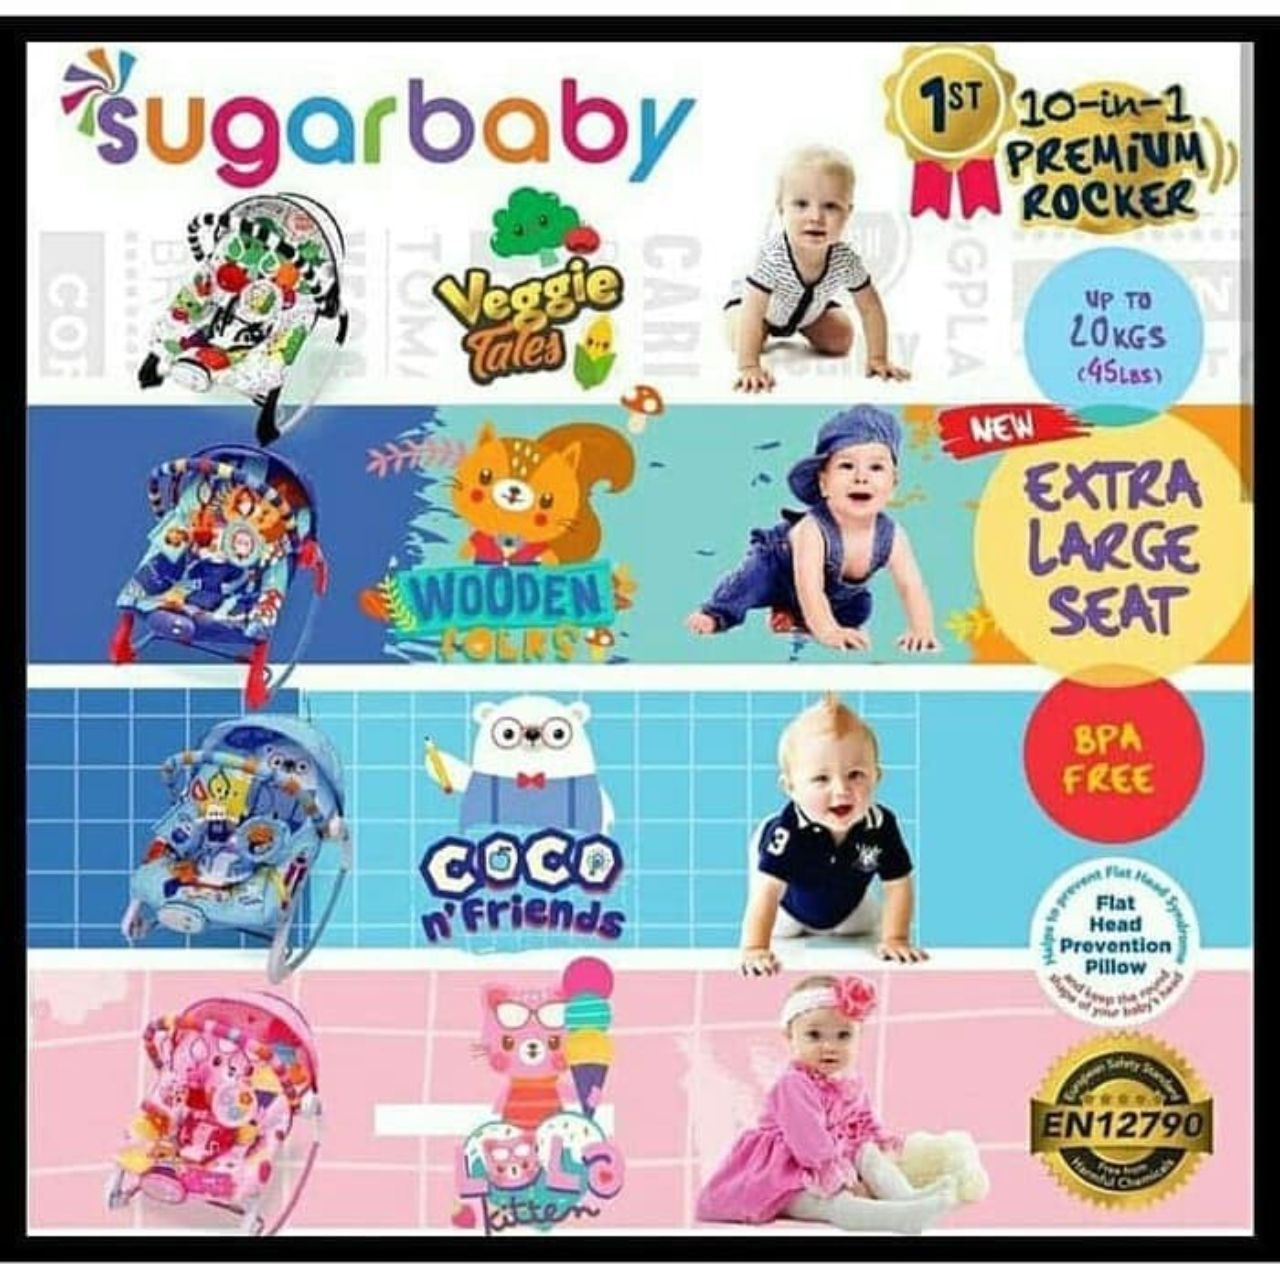 Premium Baby Bouncer New 10 in 1 type Coco n Friend1